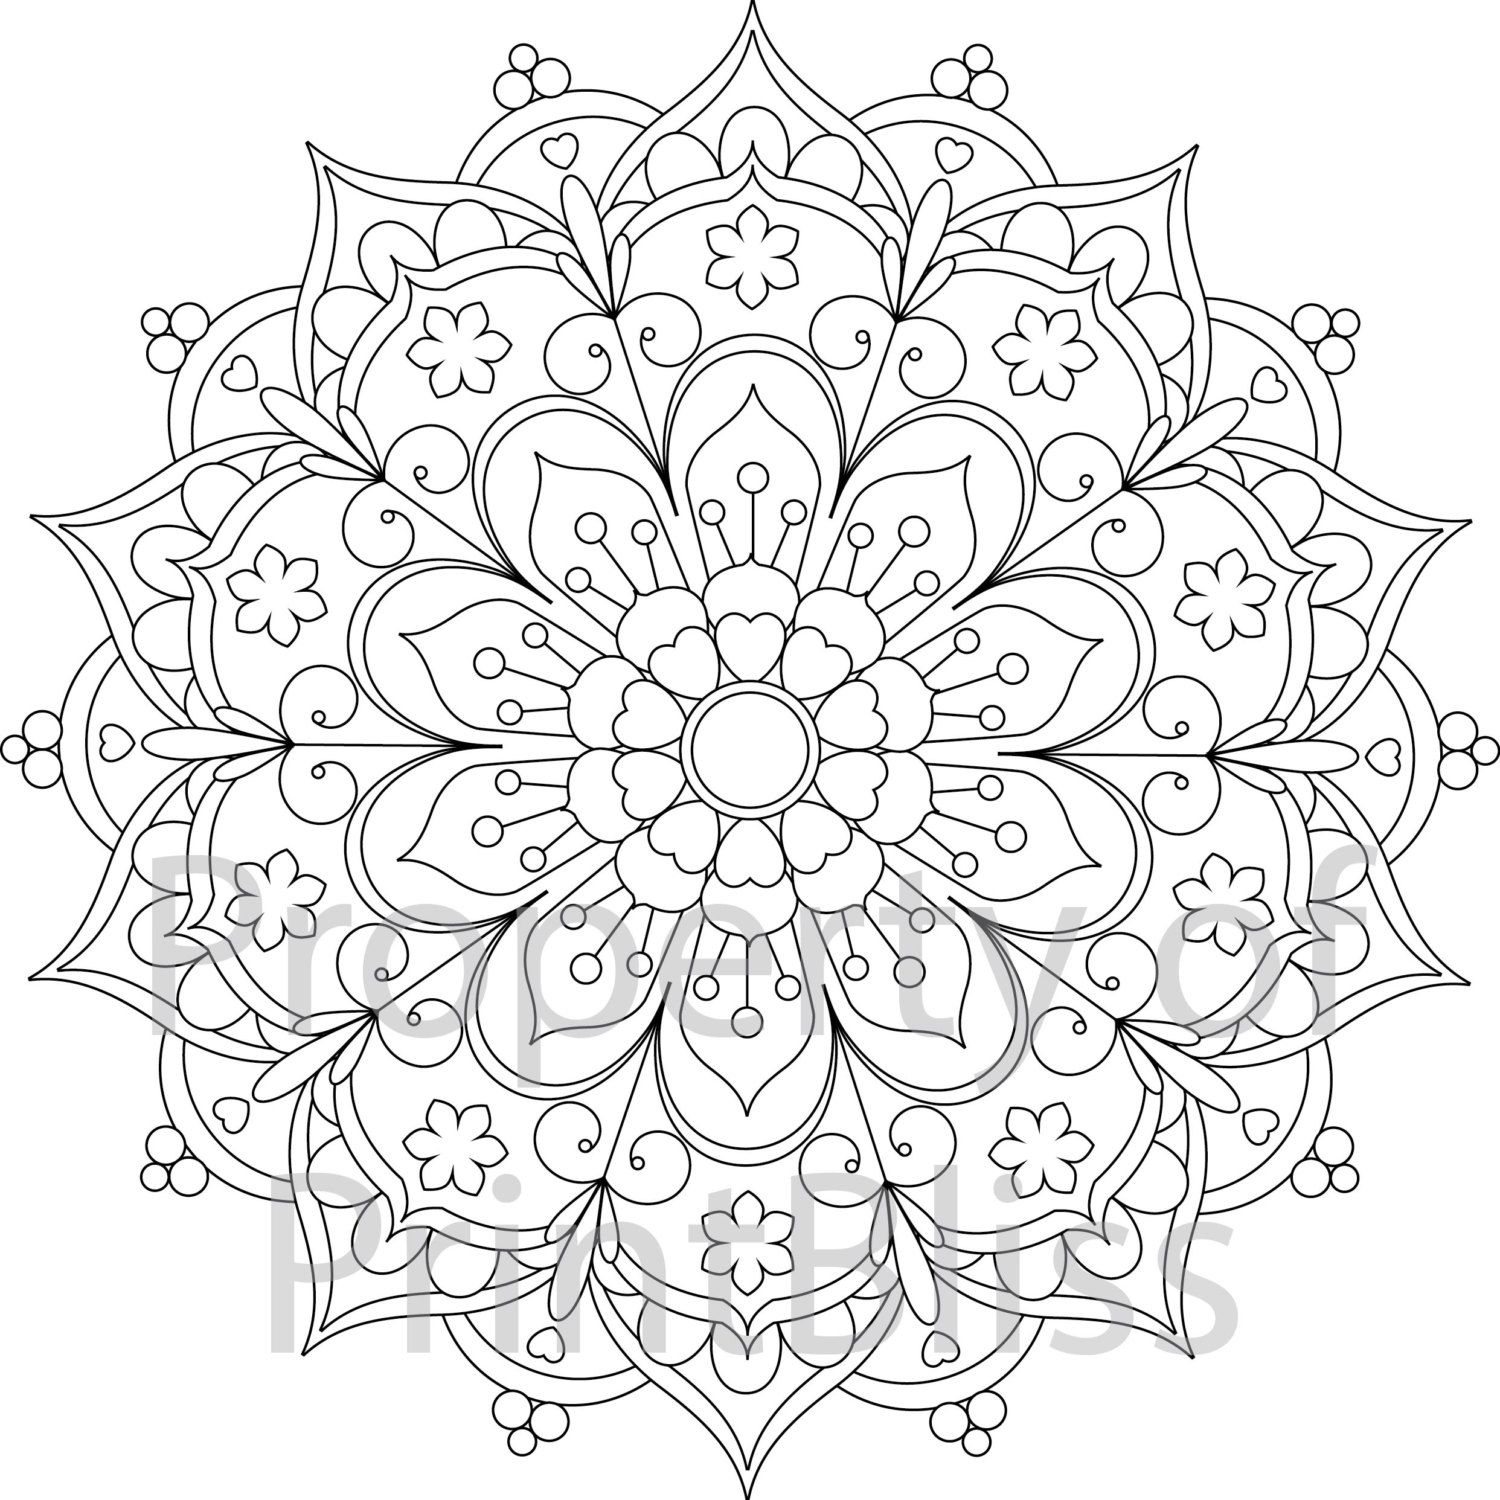 25 Flower Mandala printable coloring page by PrintBliss